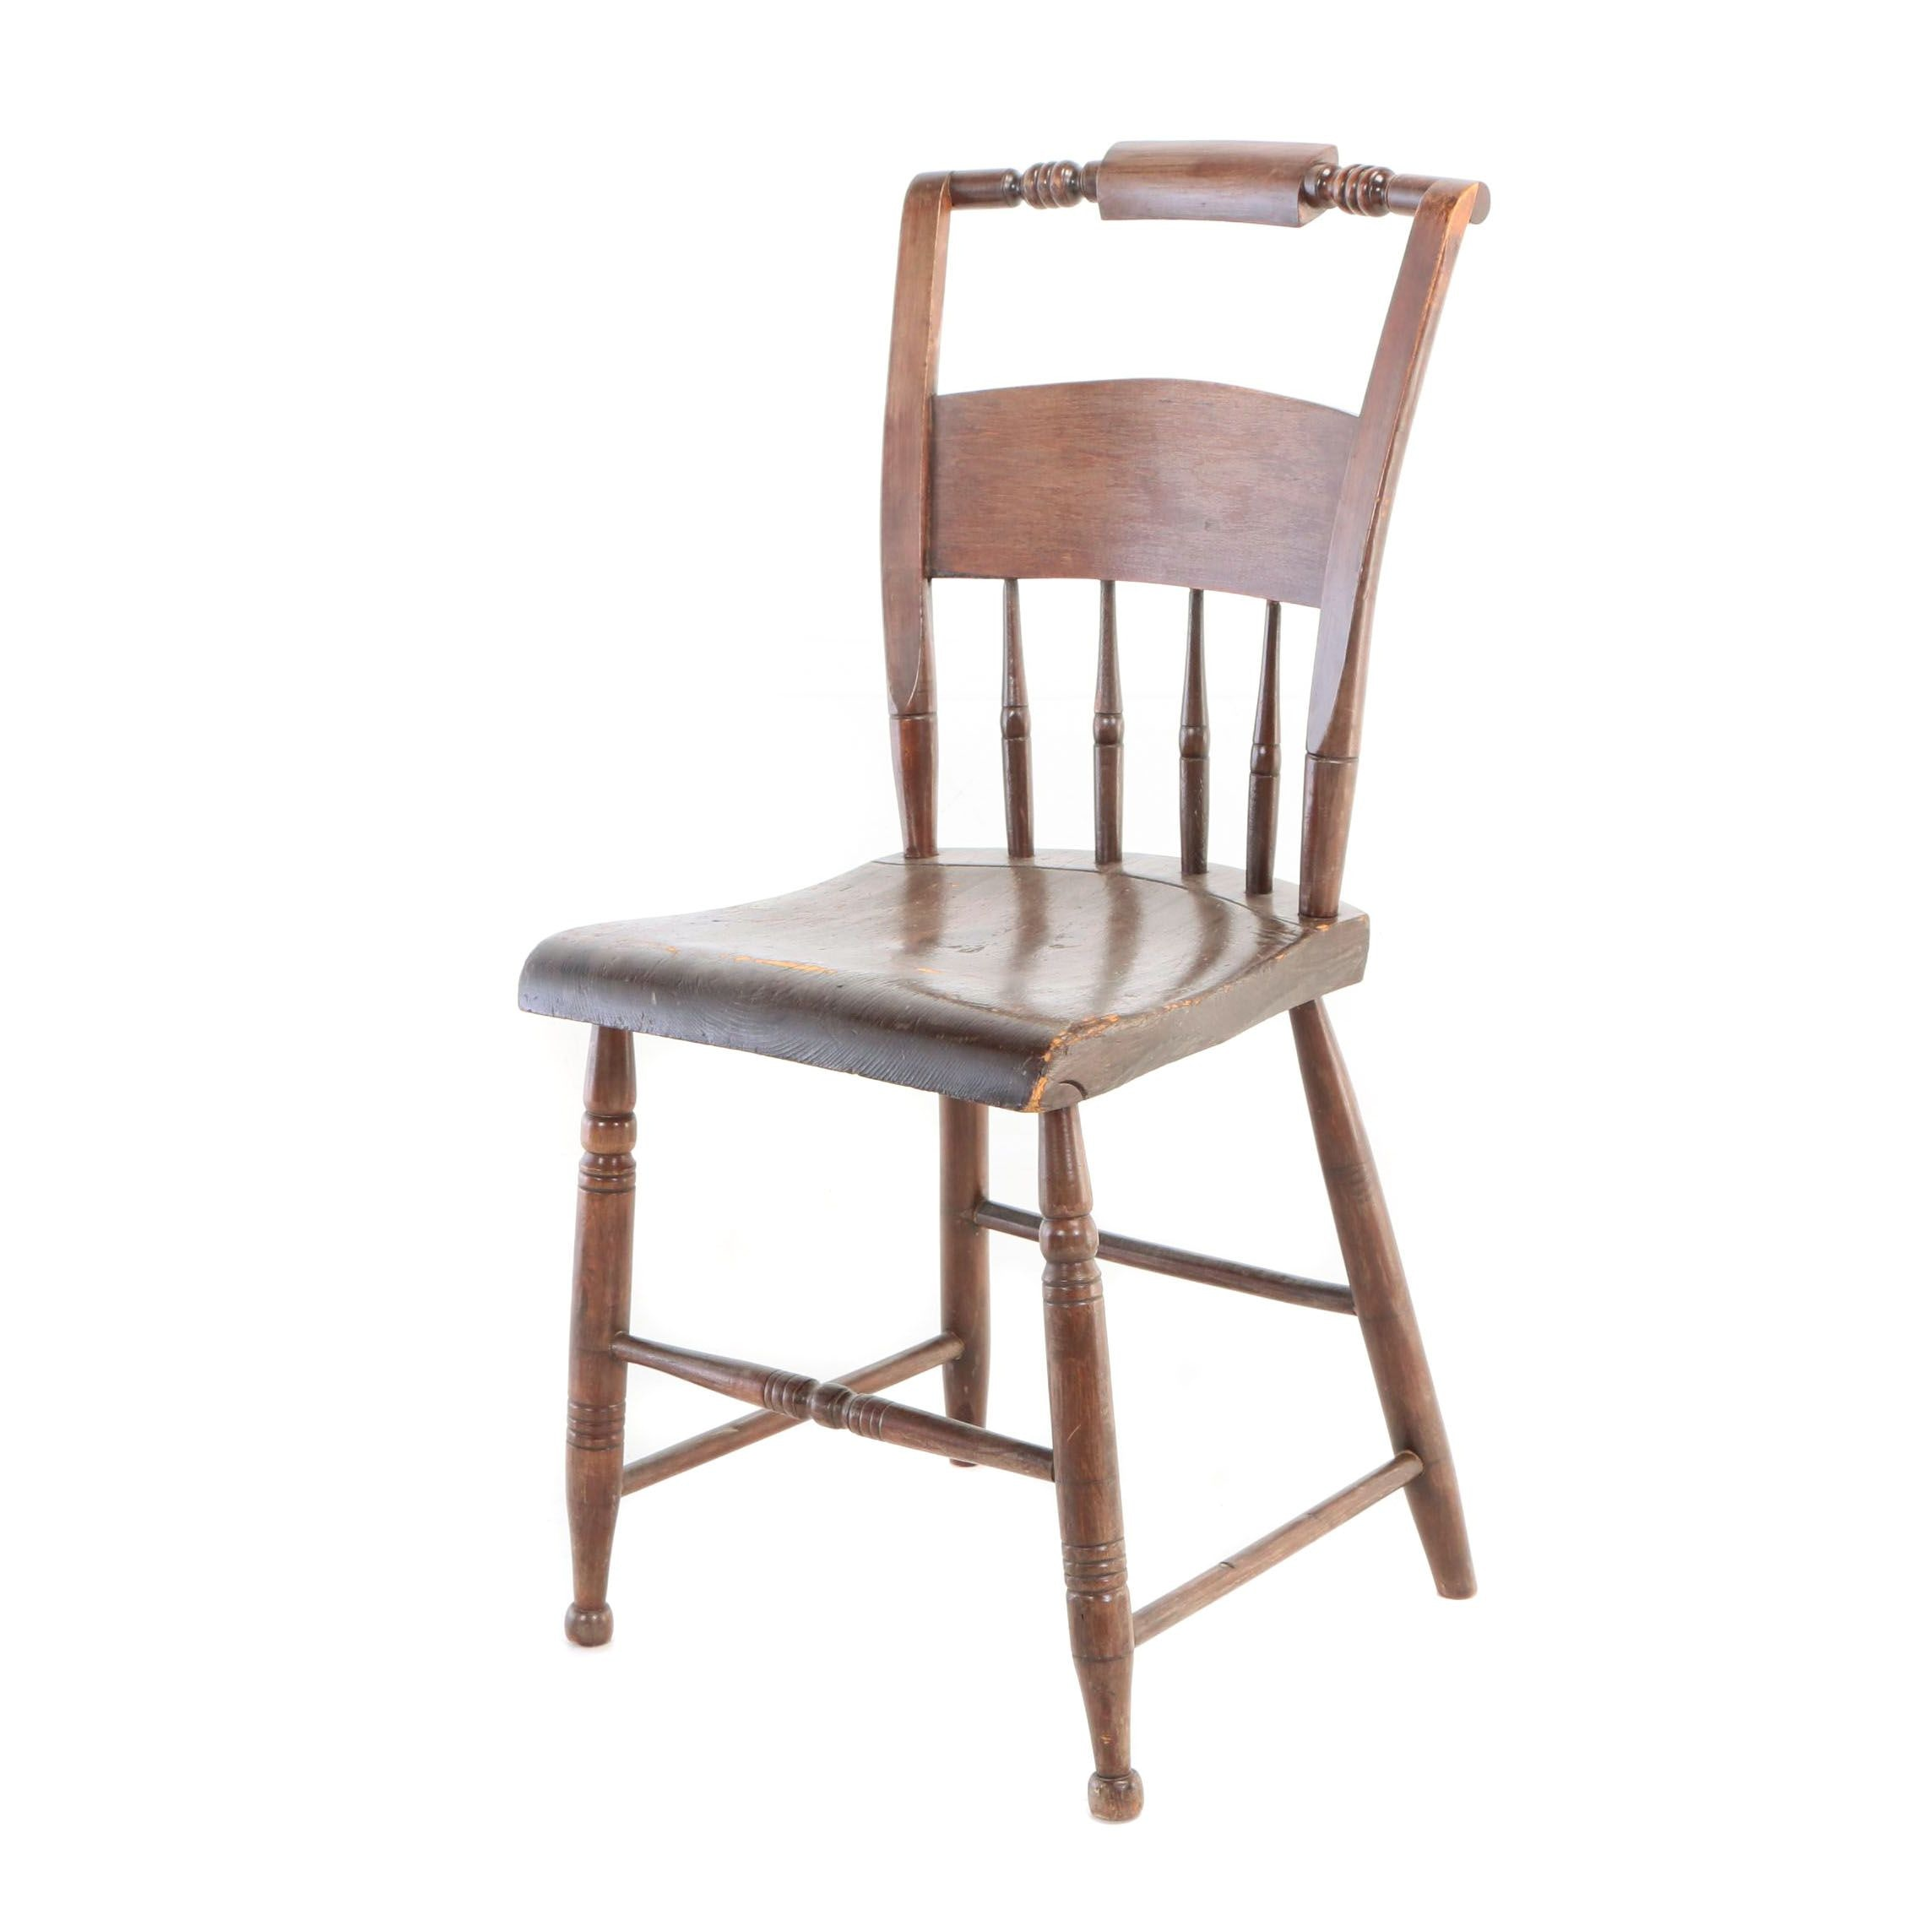 American Brown-Painted Plank-Seat Side Chair, Mid 19th Century